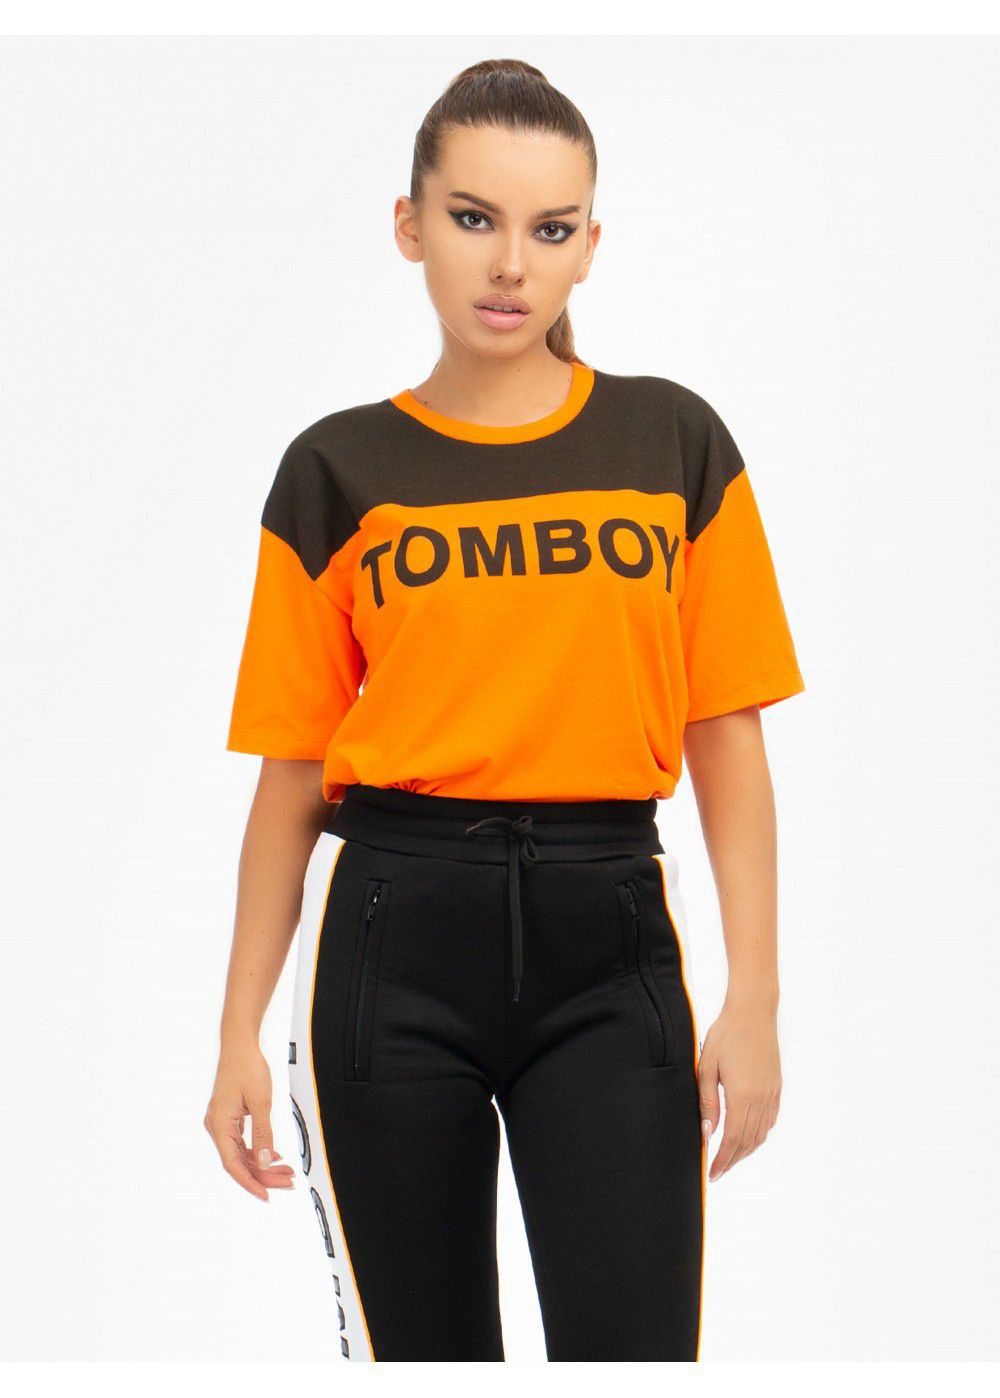 Tomboy T-Shirt in Neon Orange